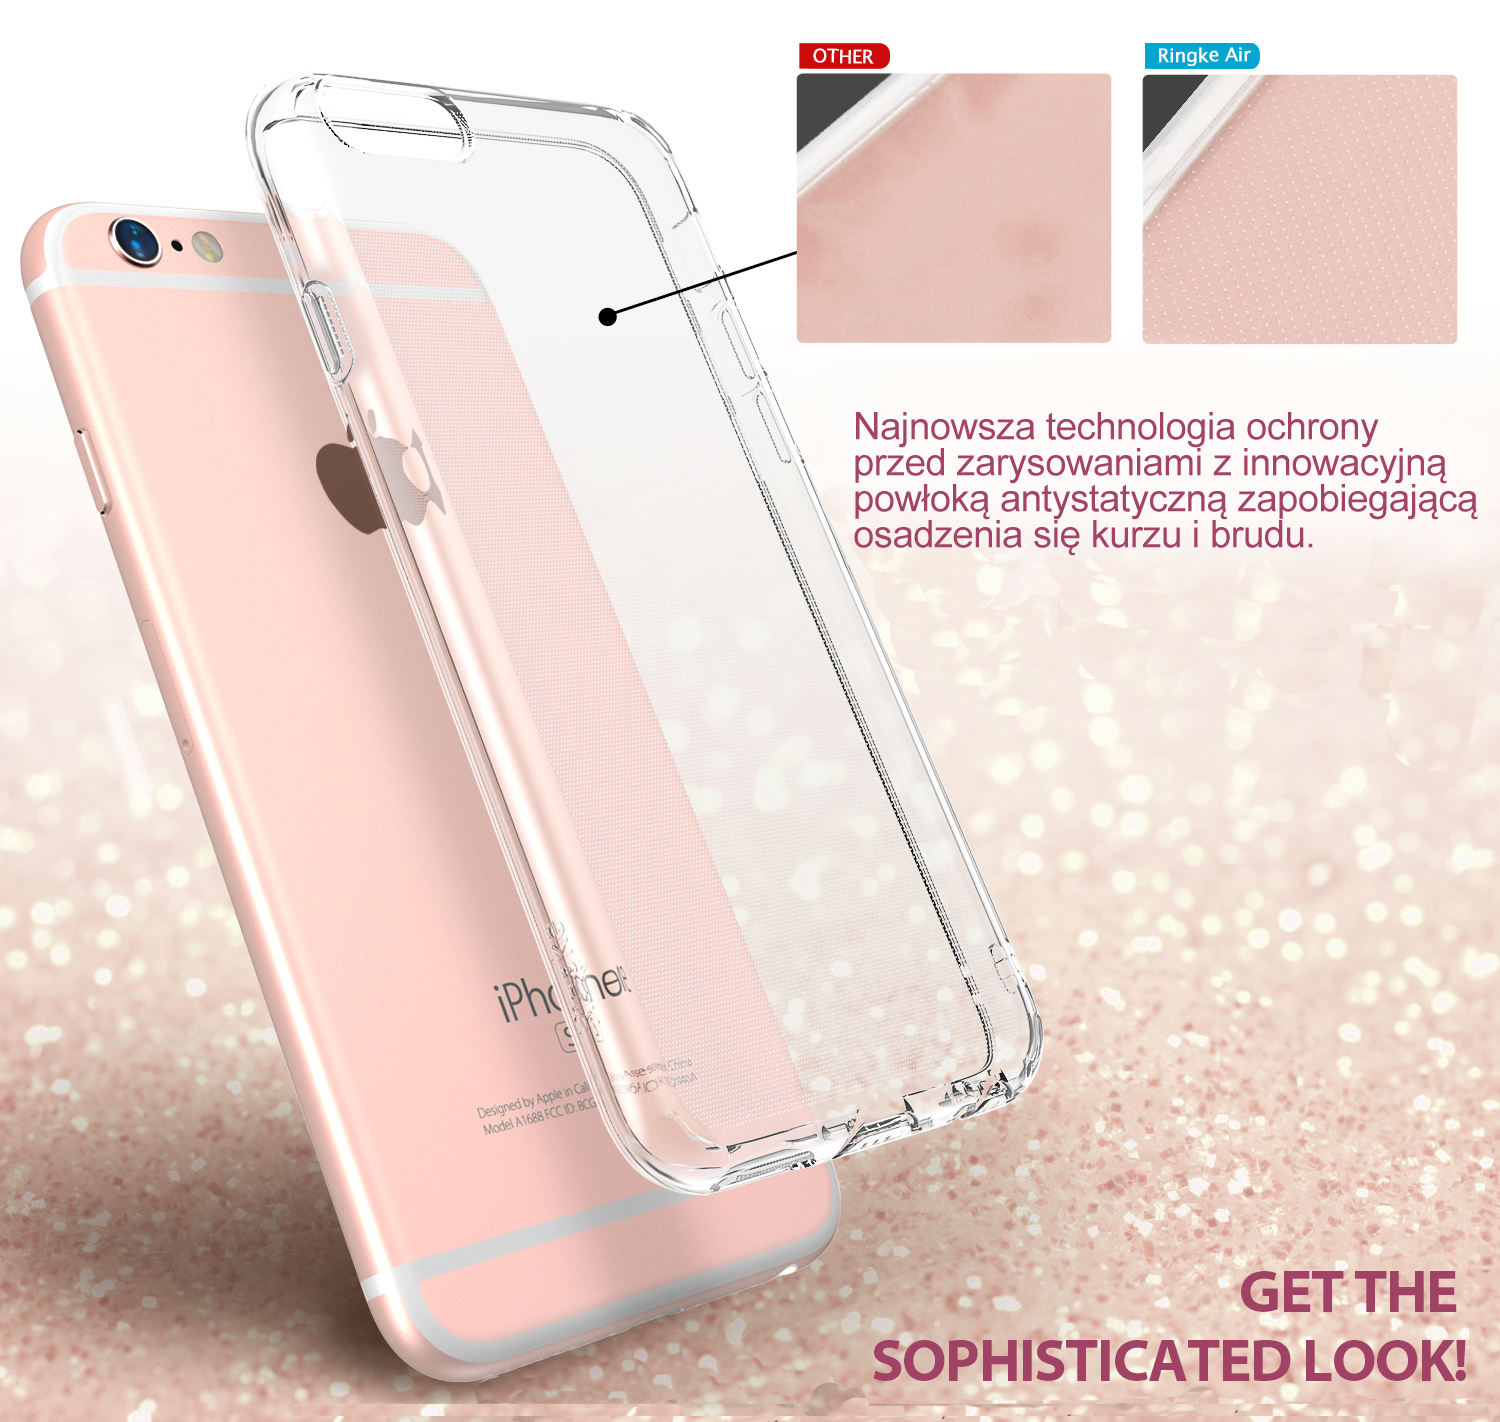 etui ringke air iphone 6 /6s crystal view